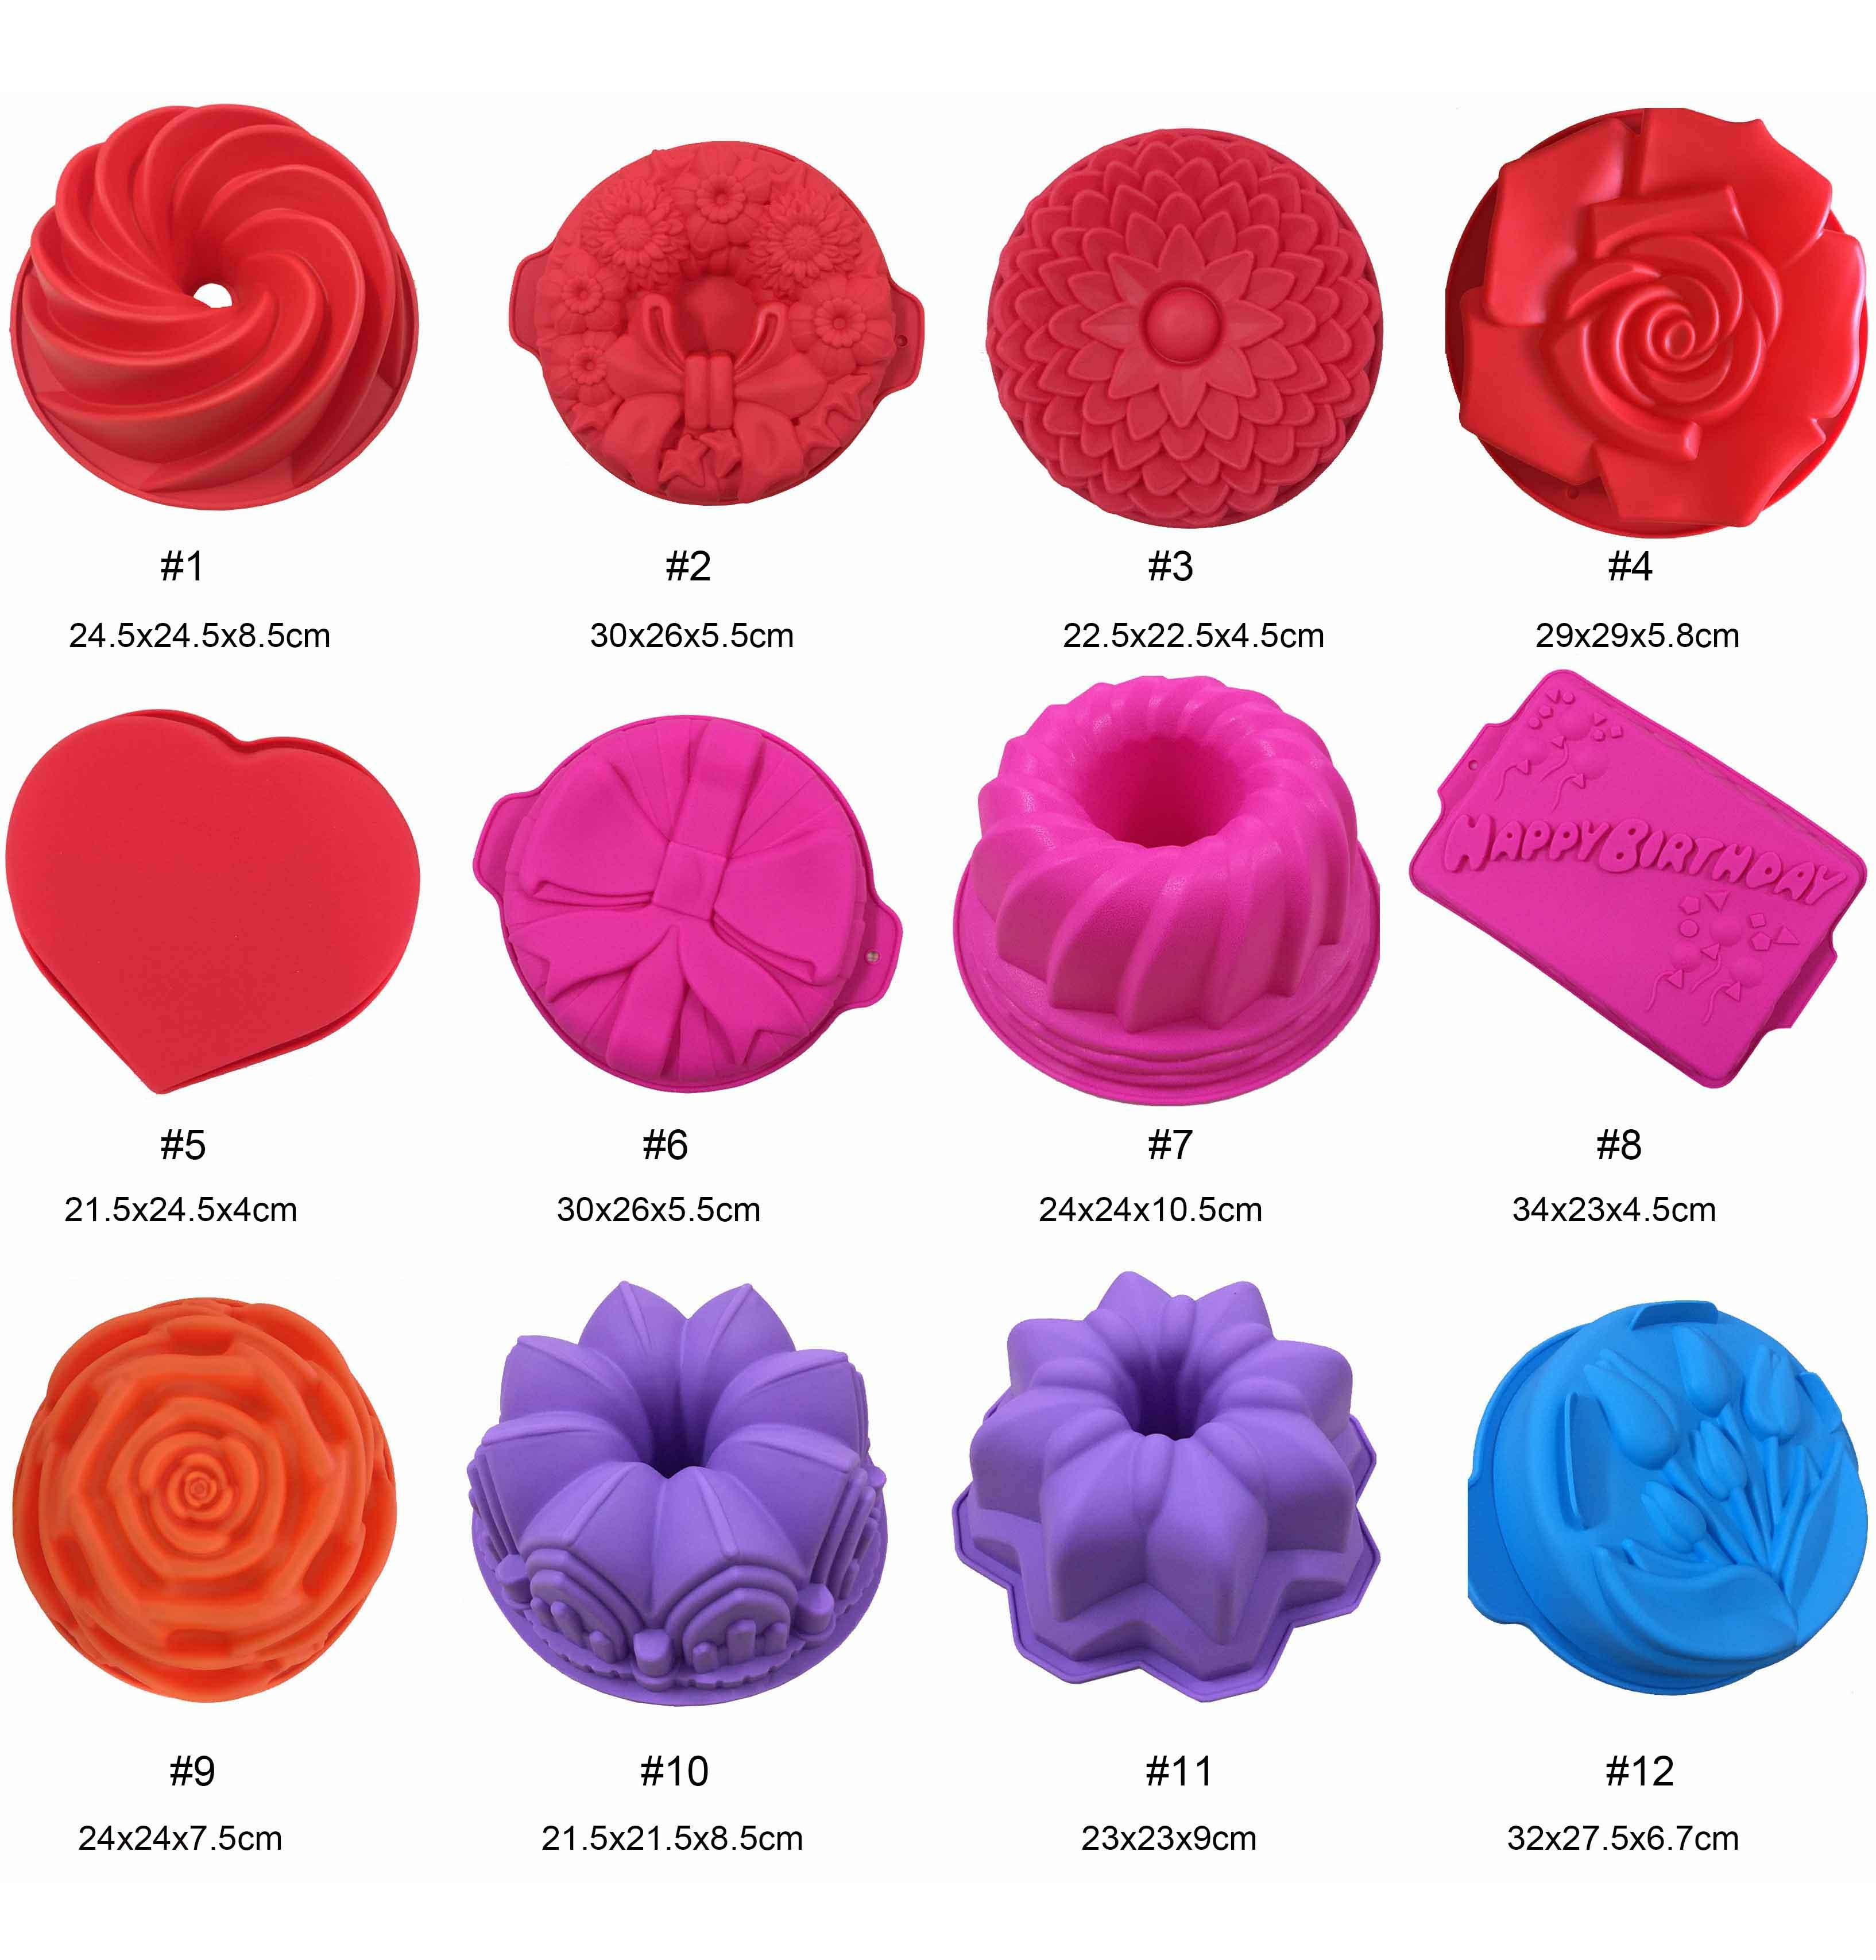 2019 Silicone Cake Mould Happy Birthday Mold 8 12inch Big Crown Heart Flower Non Stick Baking Tools Many Styles Random Color DHL From Shunhuico